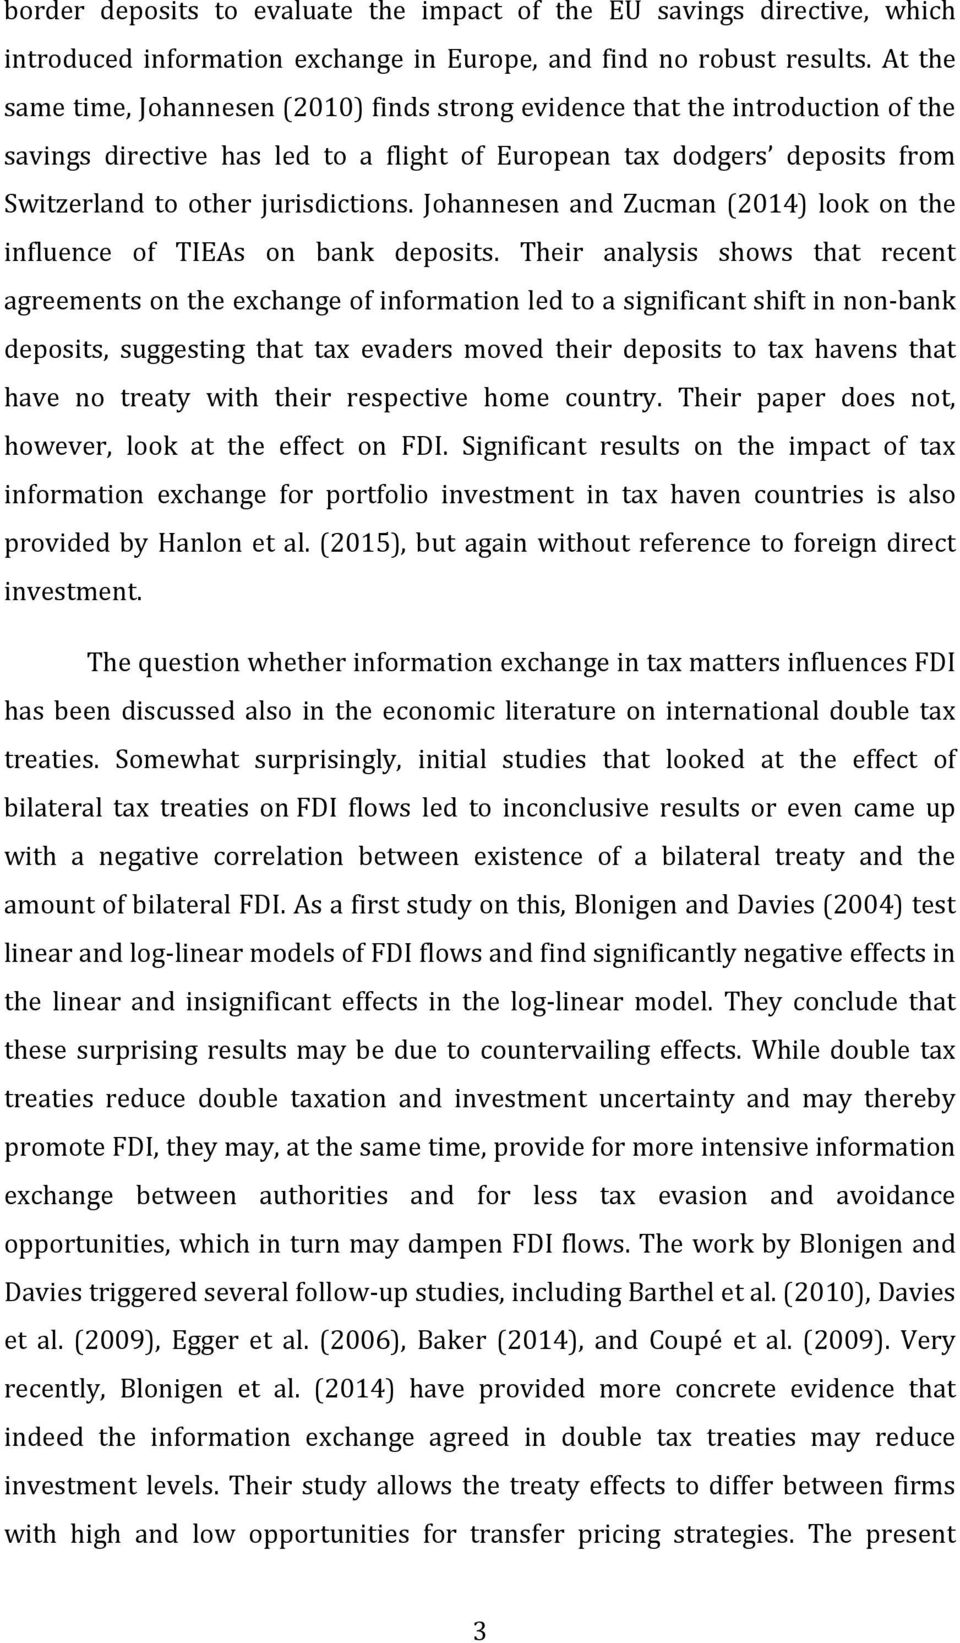 Johannesen and Zucman (2014) look on the influence of TIEAs on bank deposits.